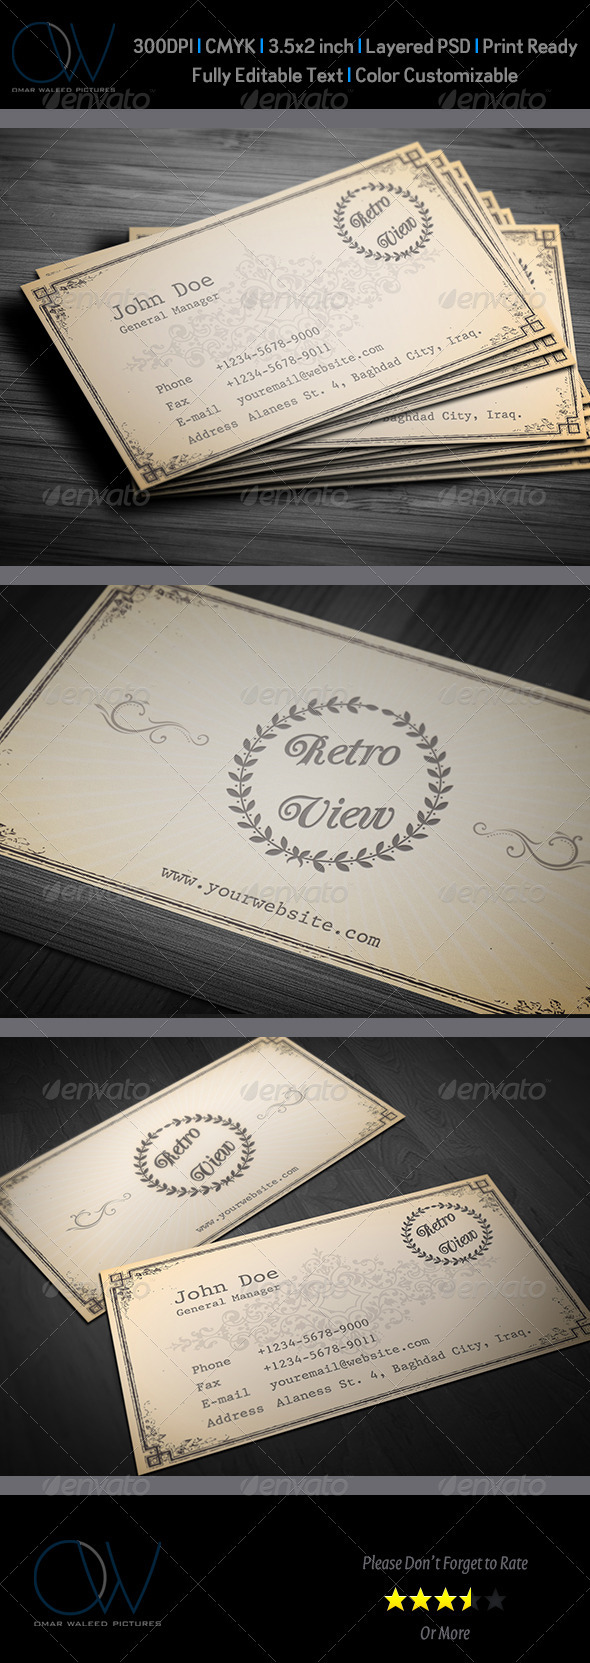 Retro / Vintage Business Card - Retro/Vintage Business Cards